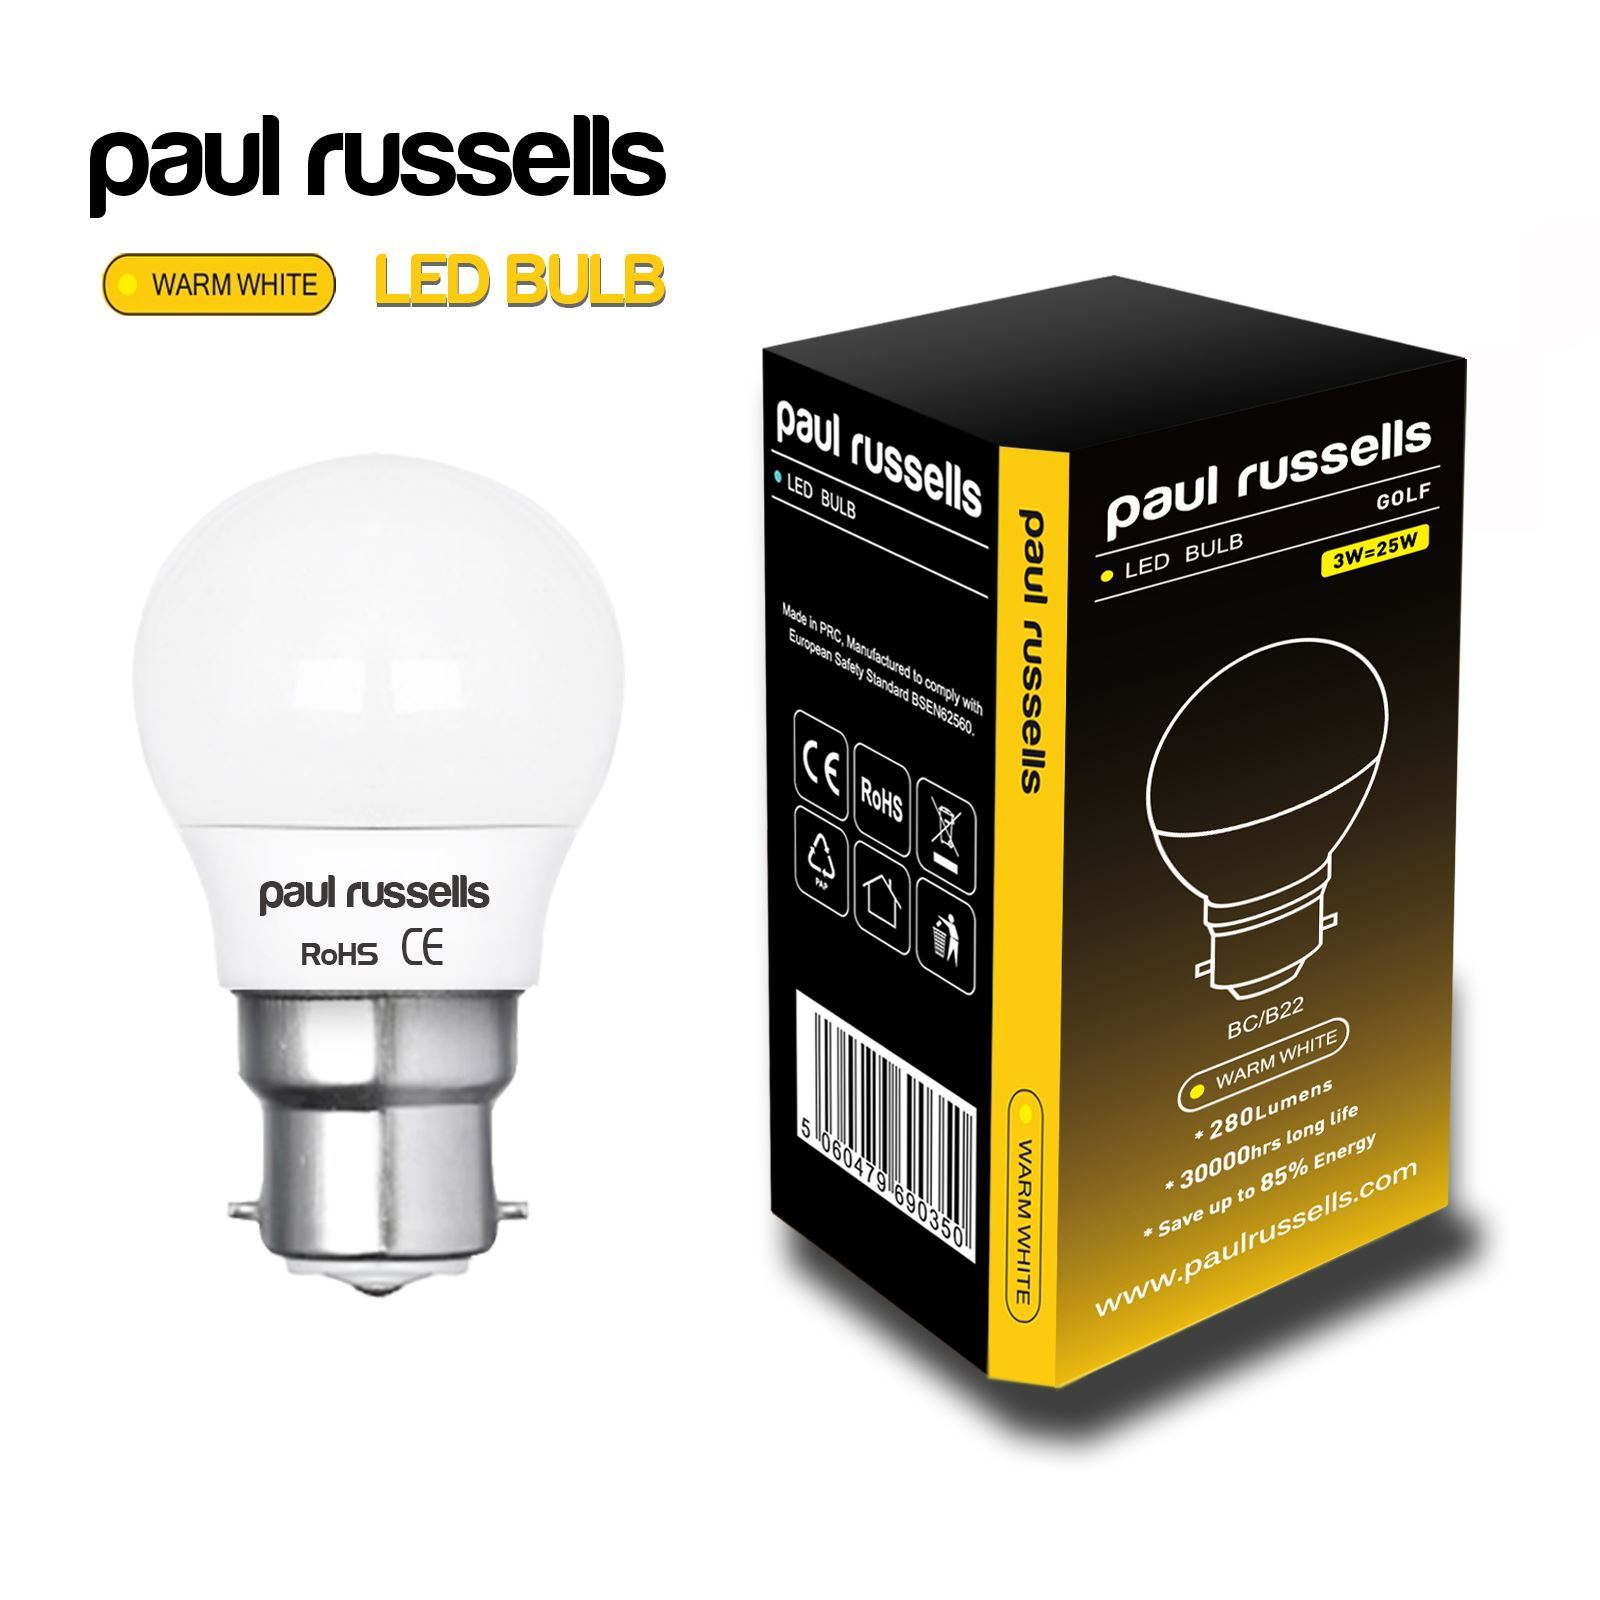 led 3w 5w 7w 12w 25w 40w 60w 100 watt bc b22 es e27 ses e14 light bulbs ebay. Black Bedroom Furniture Sets. Home Design Ideas